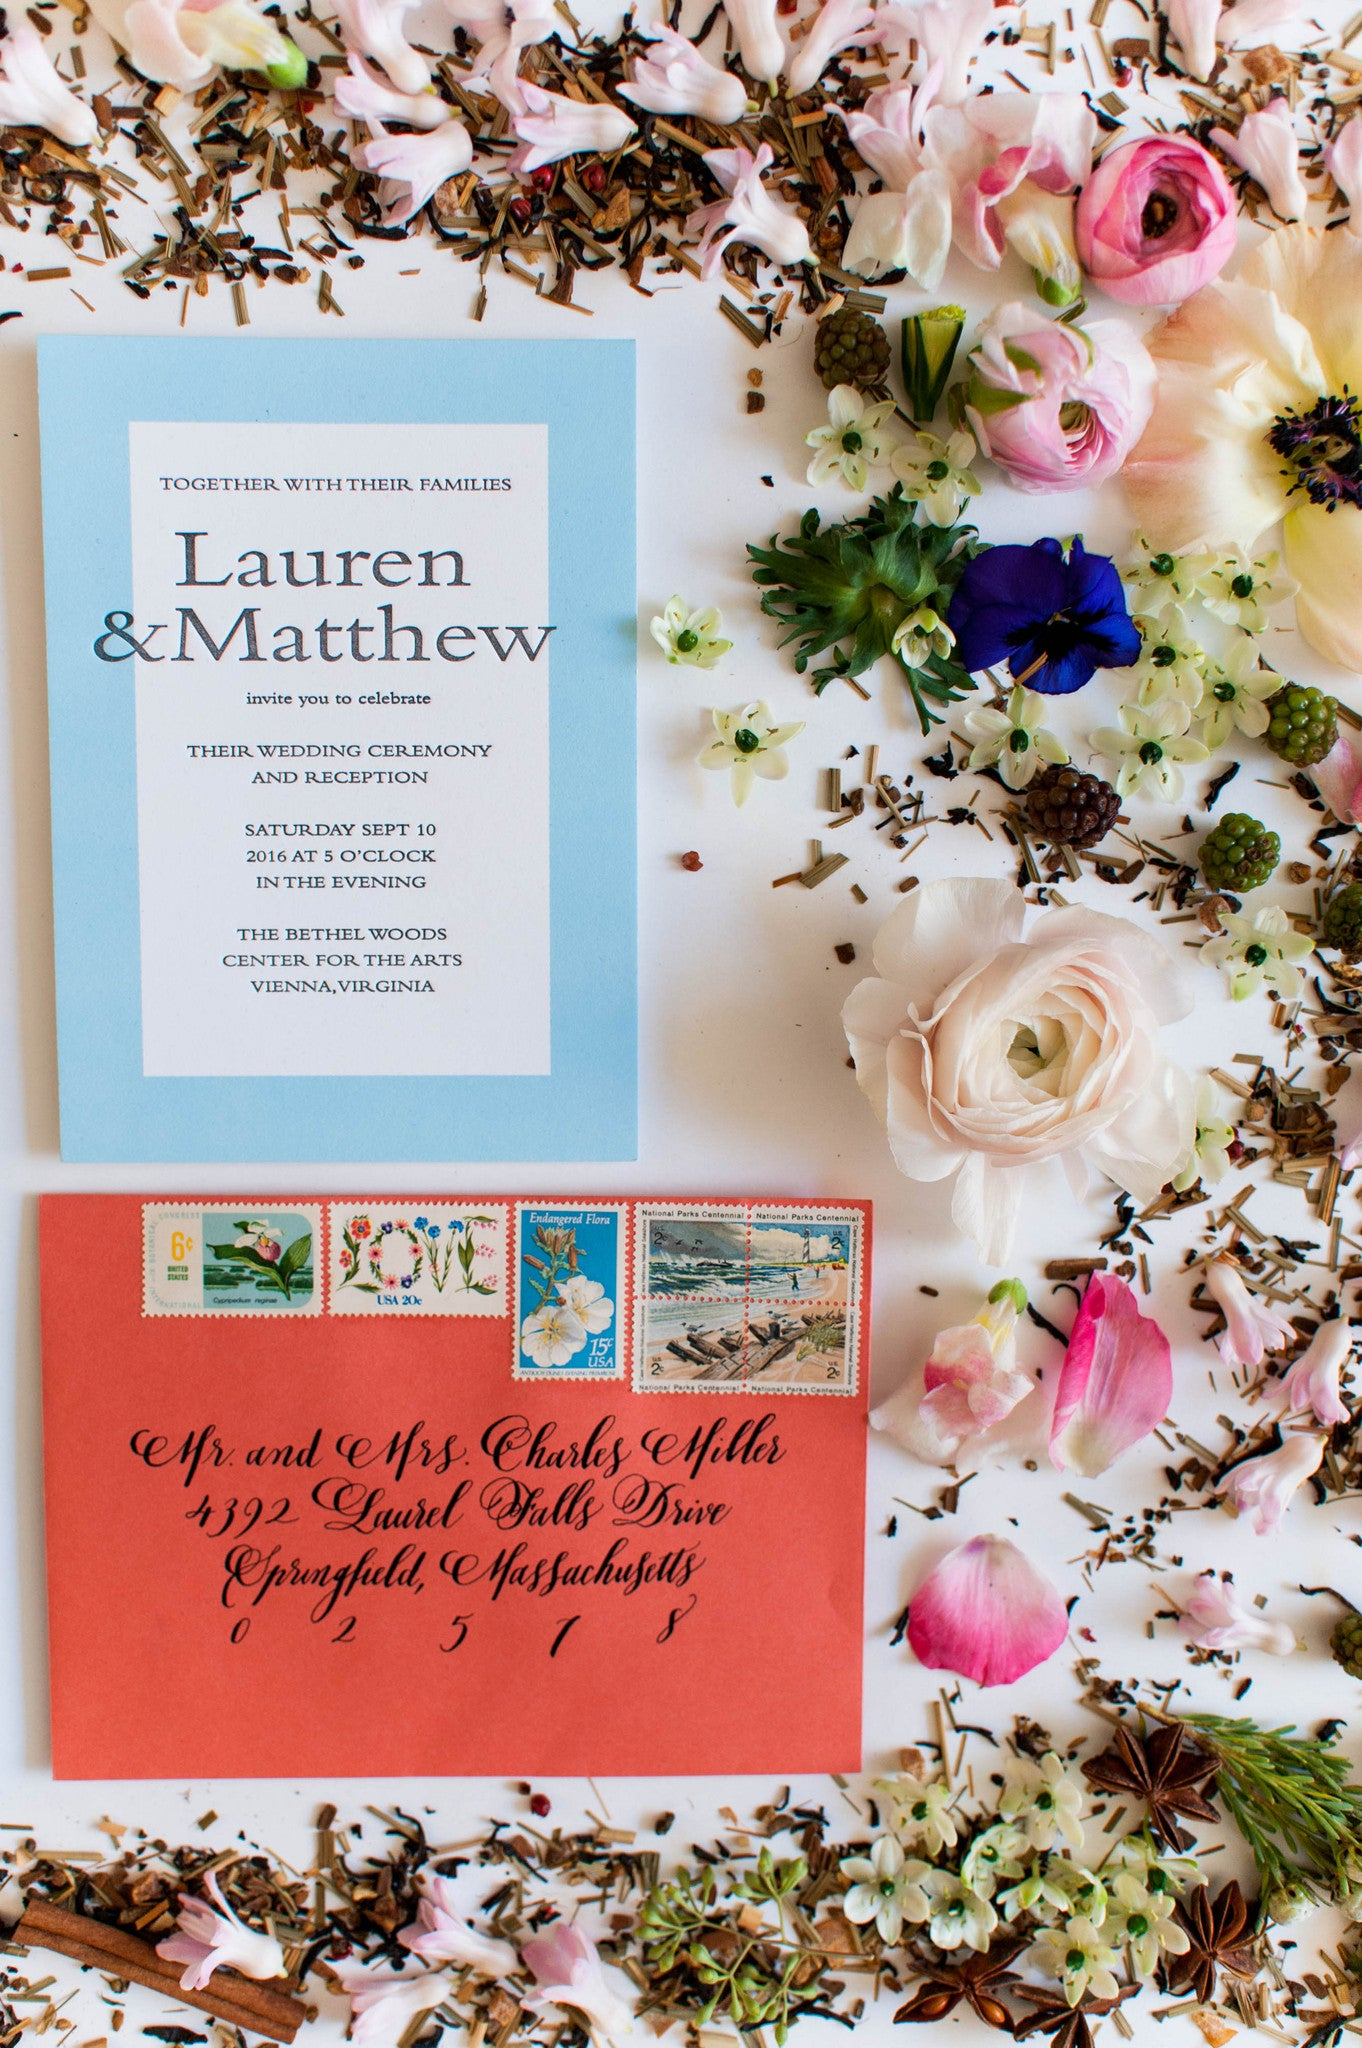 Lauren Collection Letterpress Wedding Invitation Collection - Miks ...